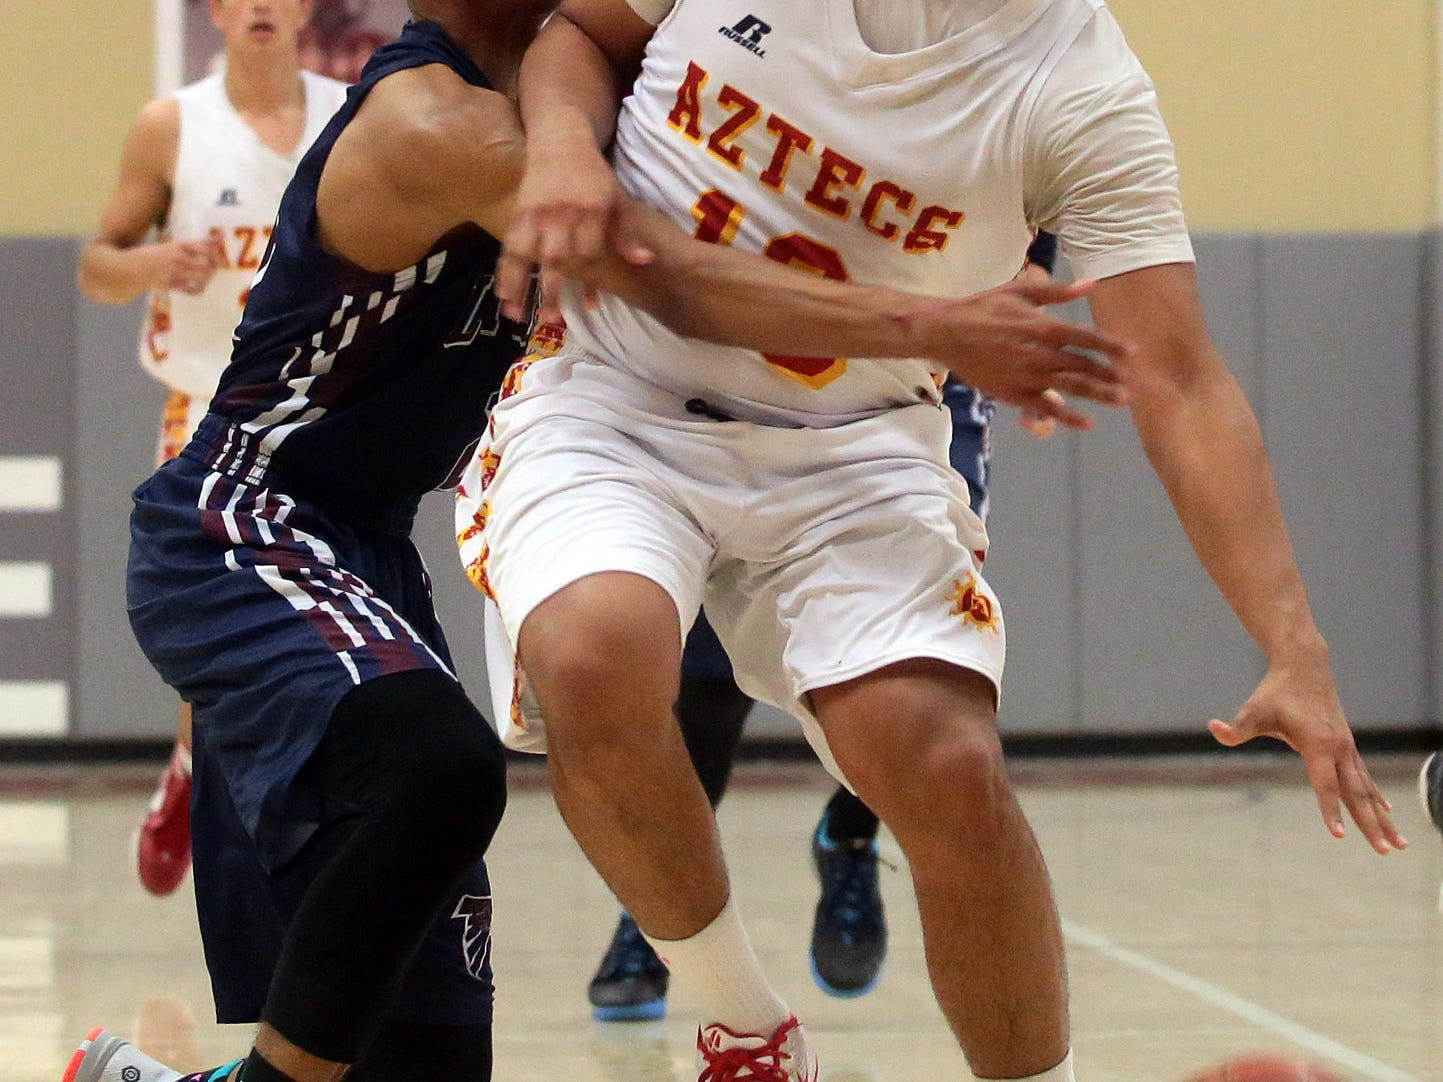 Travis Hamman of La Quinta (navy, left) reaches in while defending Joey Fabela of Palm Desert (13, white, bottom) with 6:10 left to play in the fourth quarter with La Quinta up, 43-41 on Thursday, February 12, 2015 at Palm Desert.